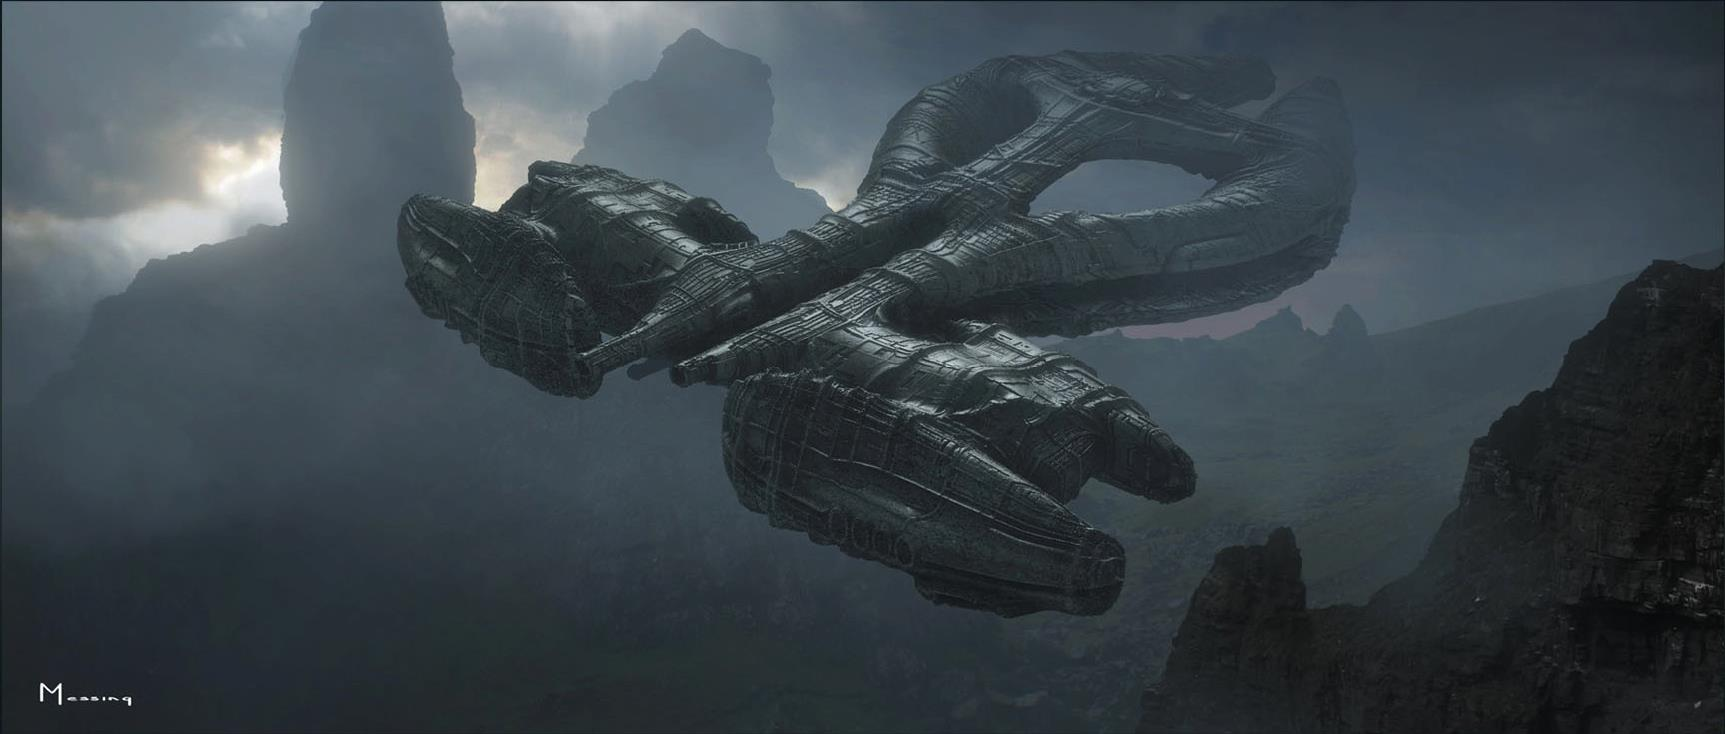 New prometheus concept art and set images avpgalaxy for Prometheus xenomorph mural